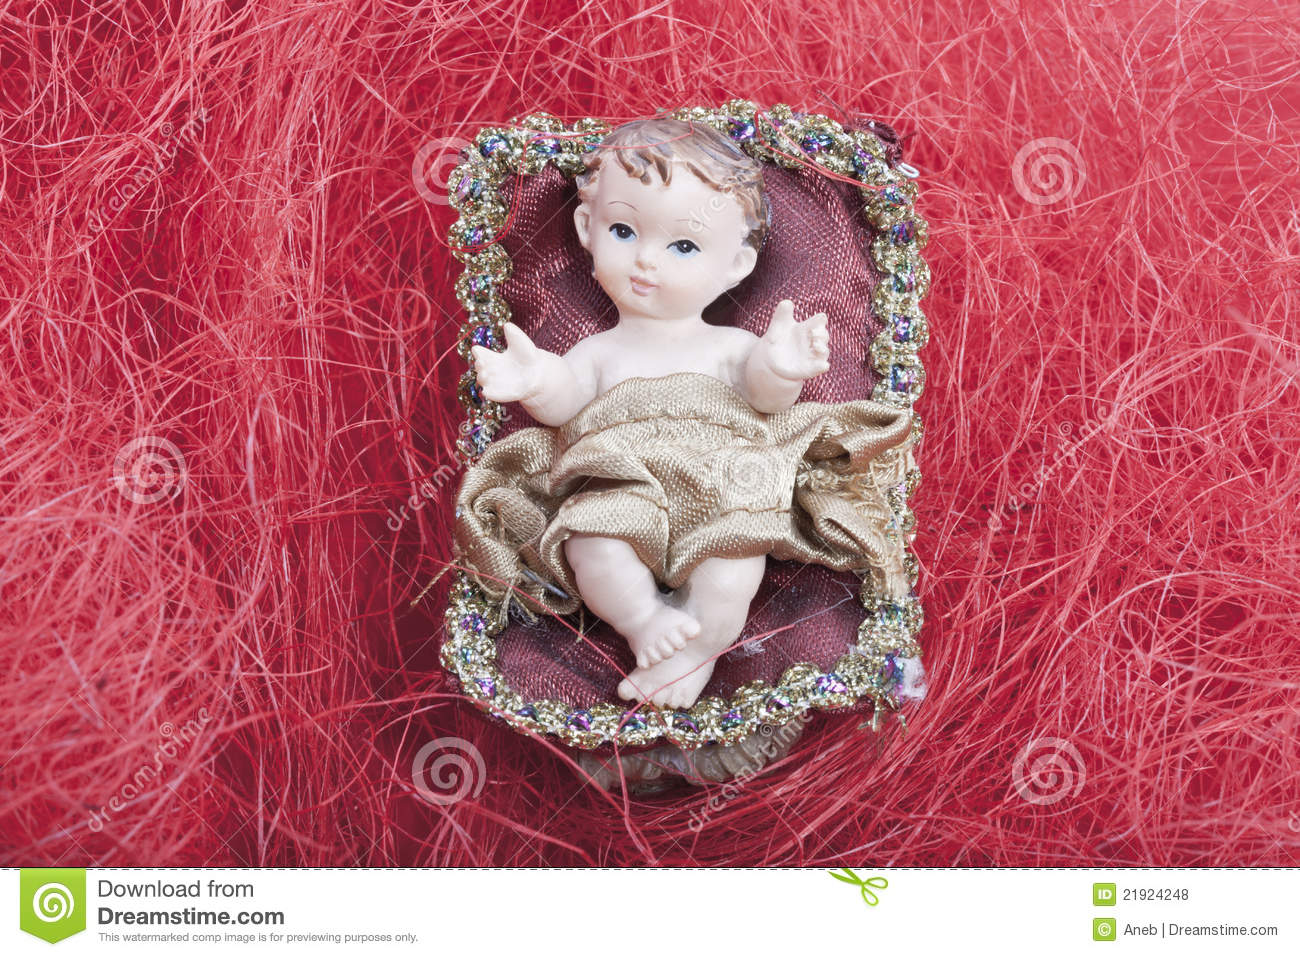 Cradle with baby jesus in a bethlehem home at christmas on red